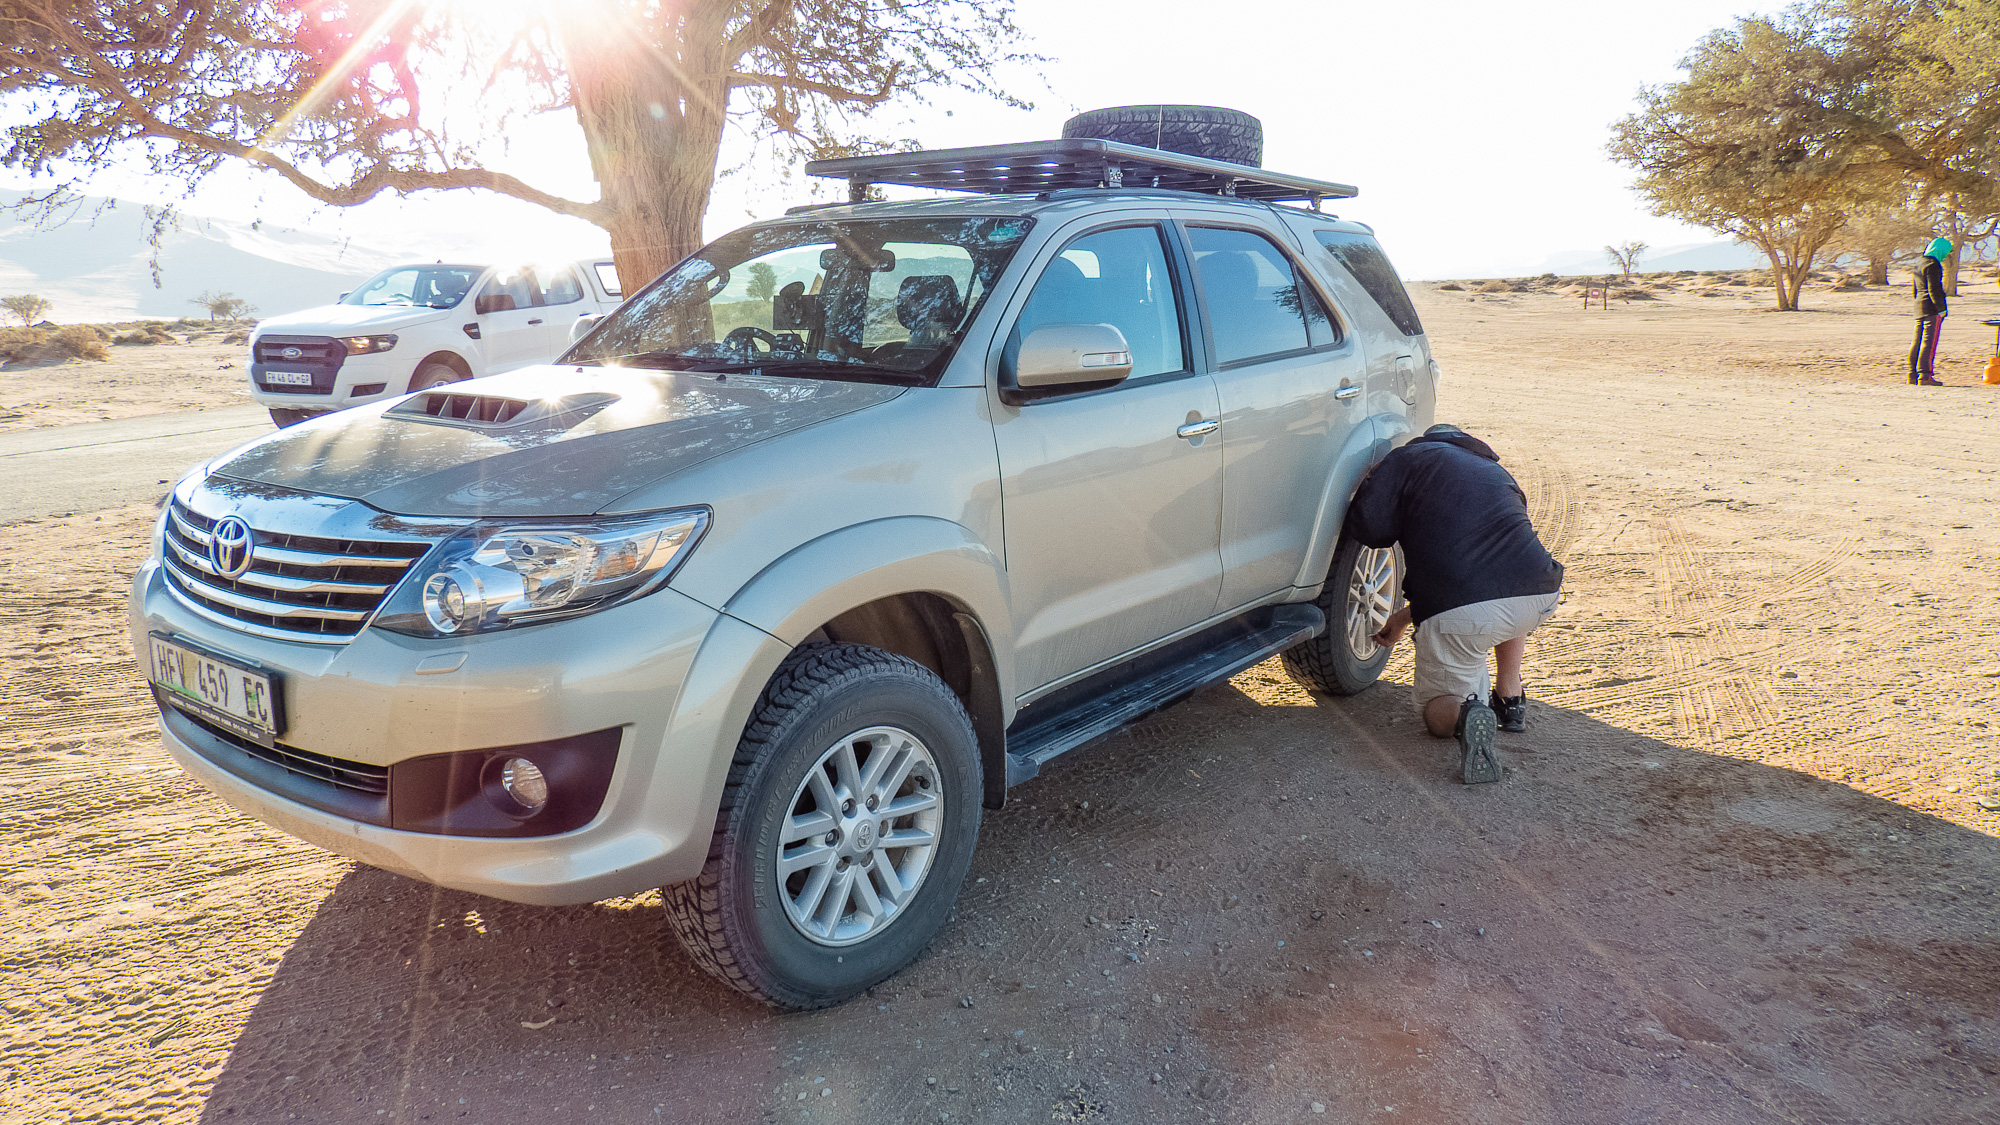 Tyre pressures for gravel roads